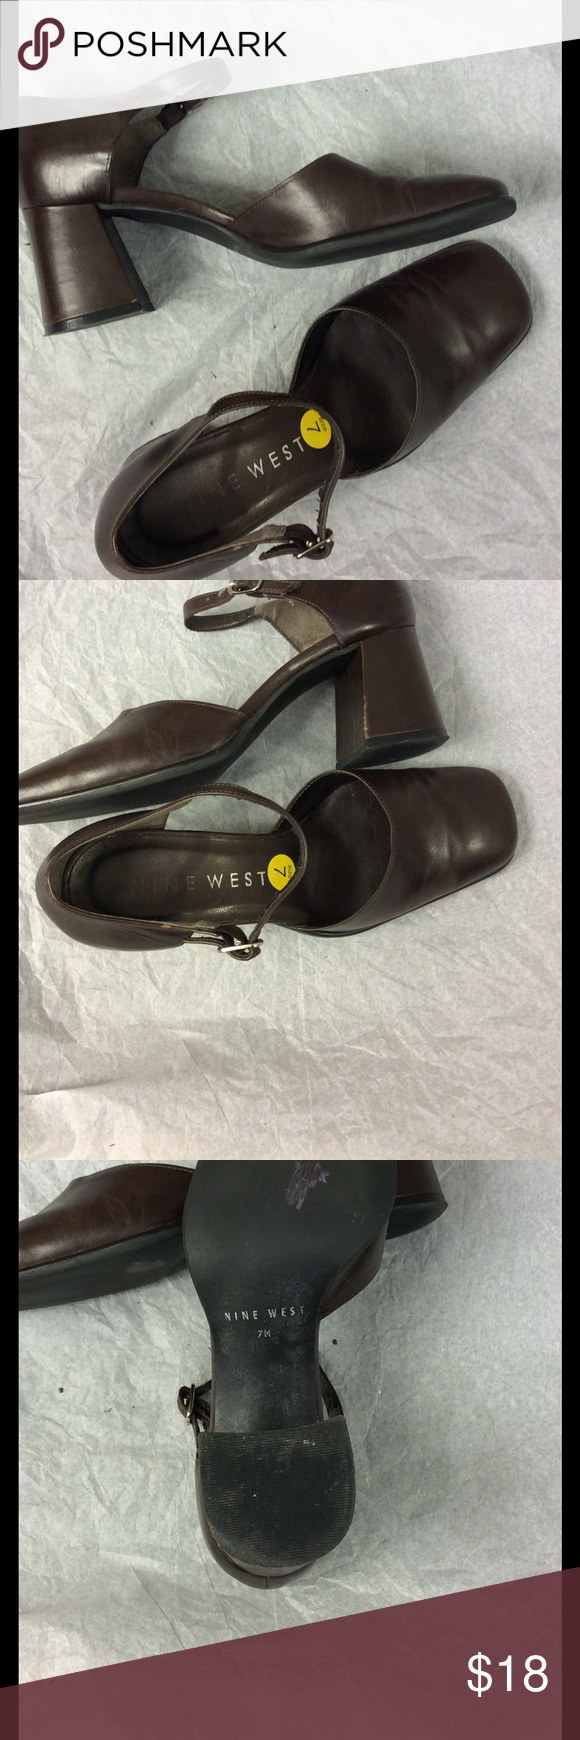 Nine West leather wedge heel w/ankle strap size 7 Nine West wedge heel shoe closed toe with ankle strap leather upper, made in Brazil  Size 7 Used condition but still in good shape little wear shown on bottom ,scuff mark on heel and straps show some wear  as shown in picture The inside is in clean condition Length  from toe to heel 9 3/4  inches Width  3 inches Heel is 2 1/2 inches Brown Nine West Shoes Heels